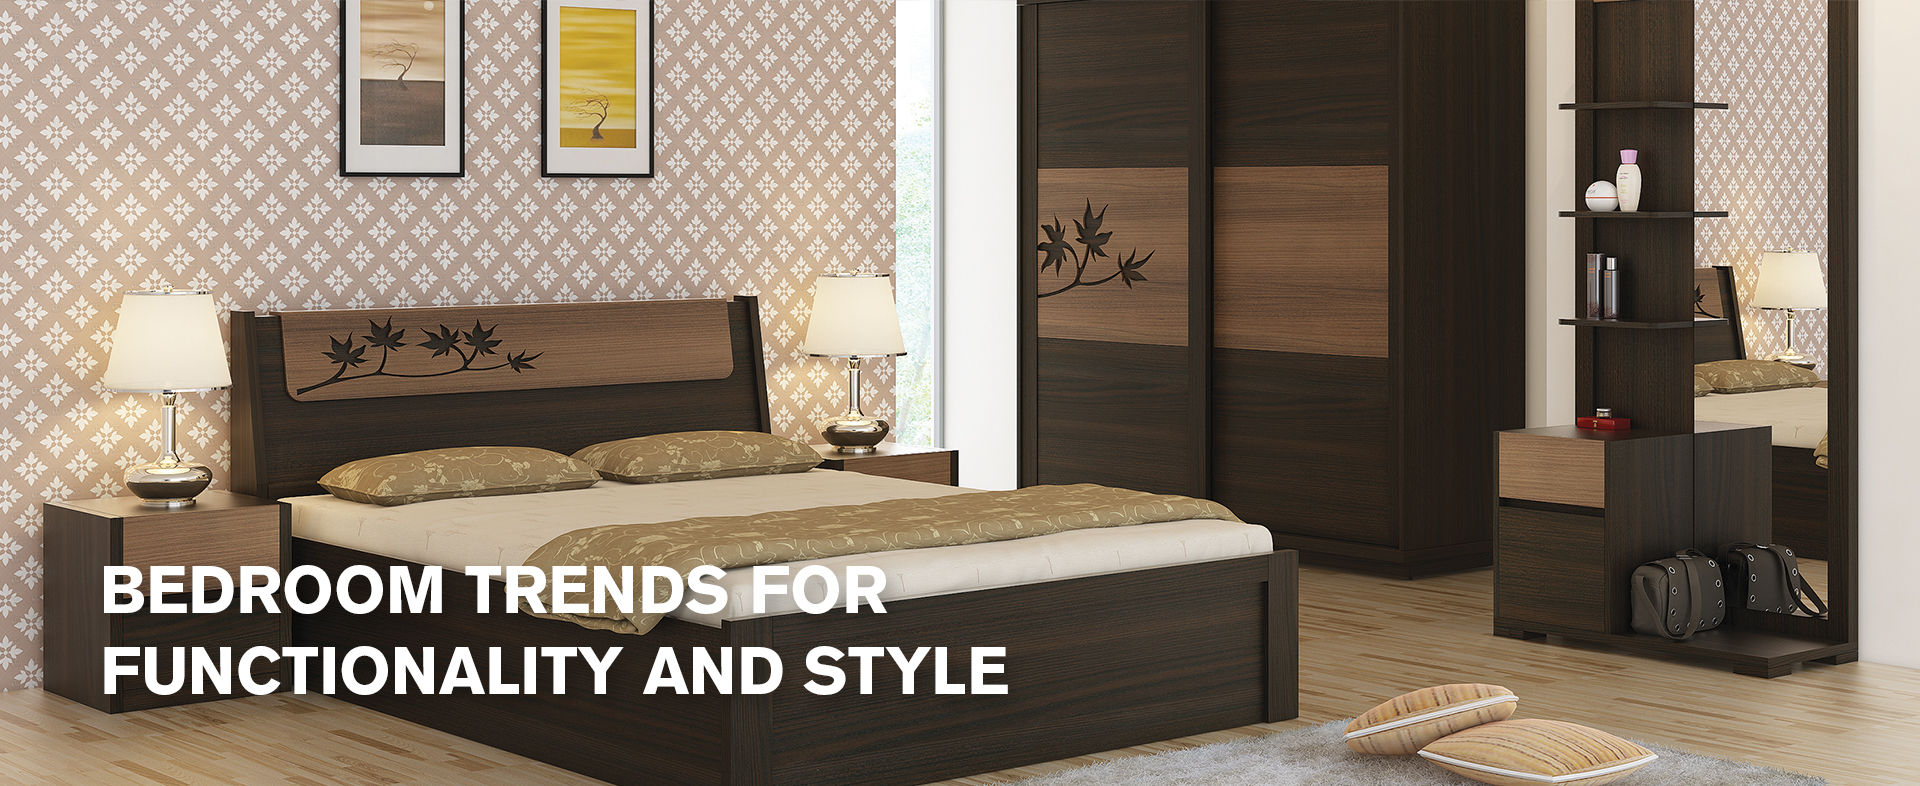 bedroom style solutions